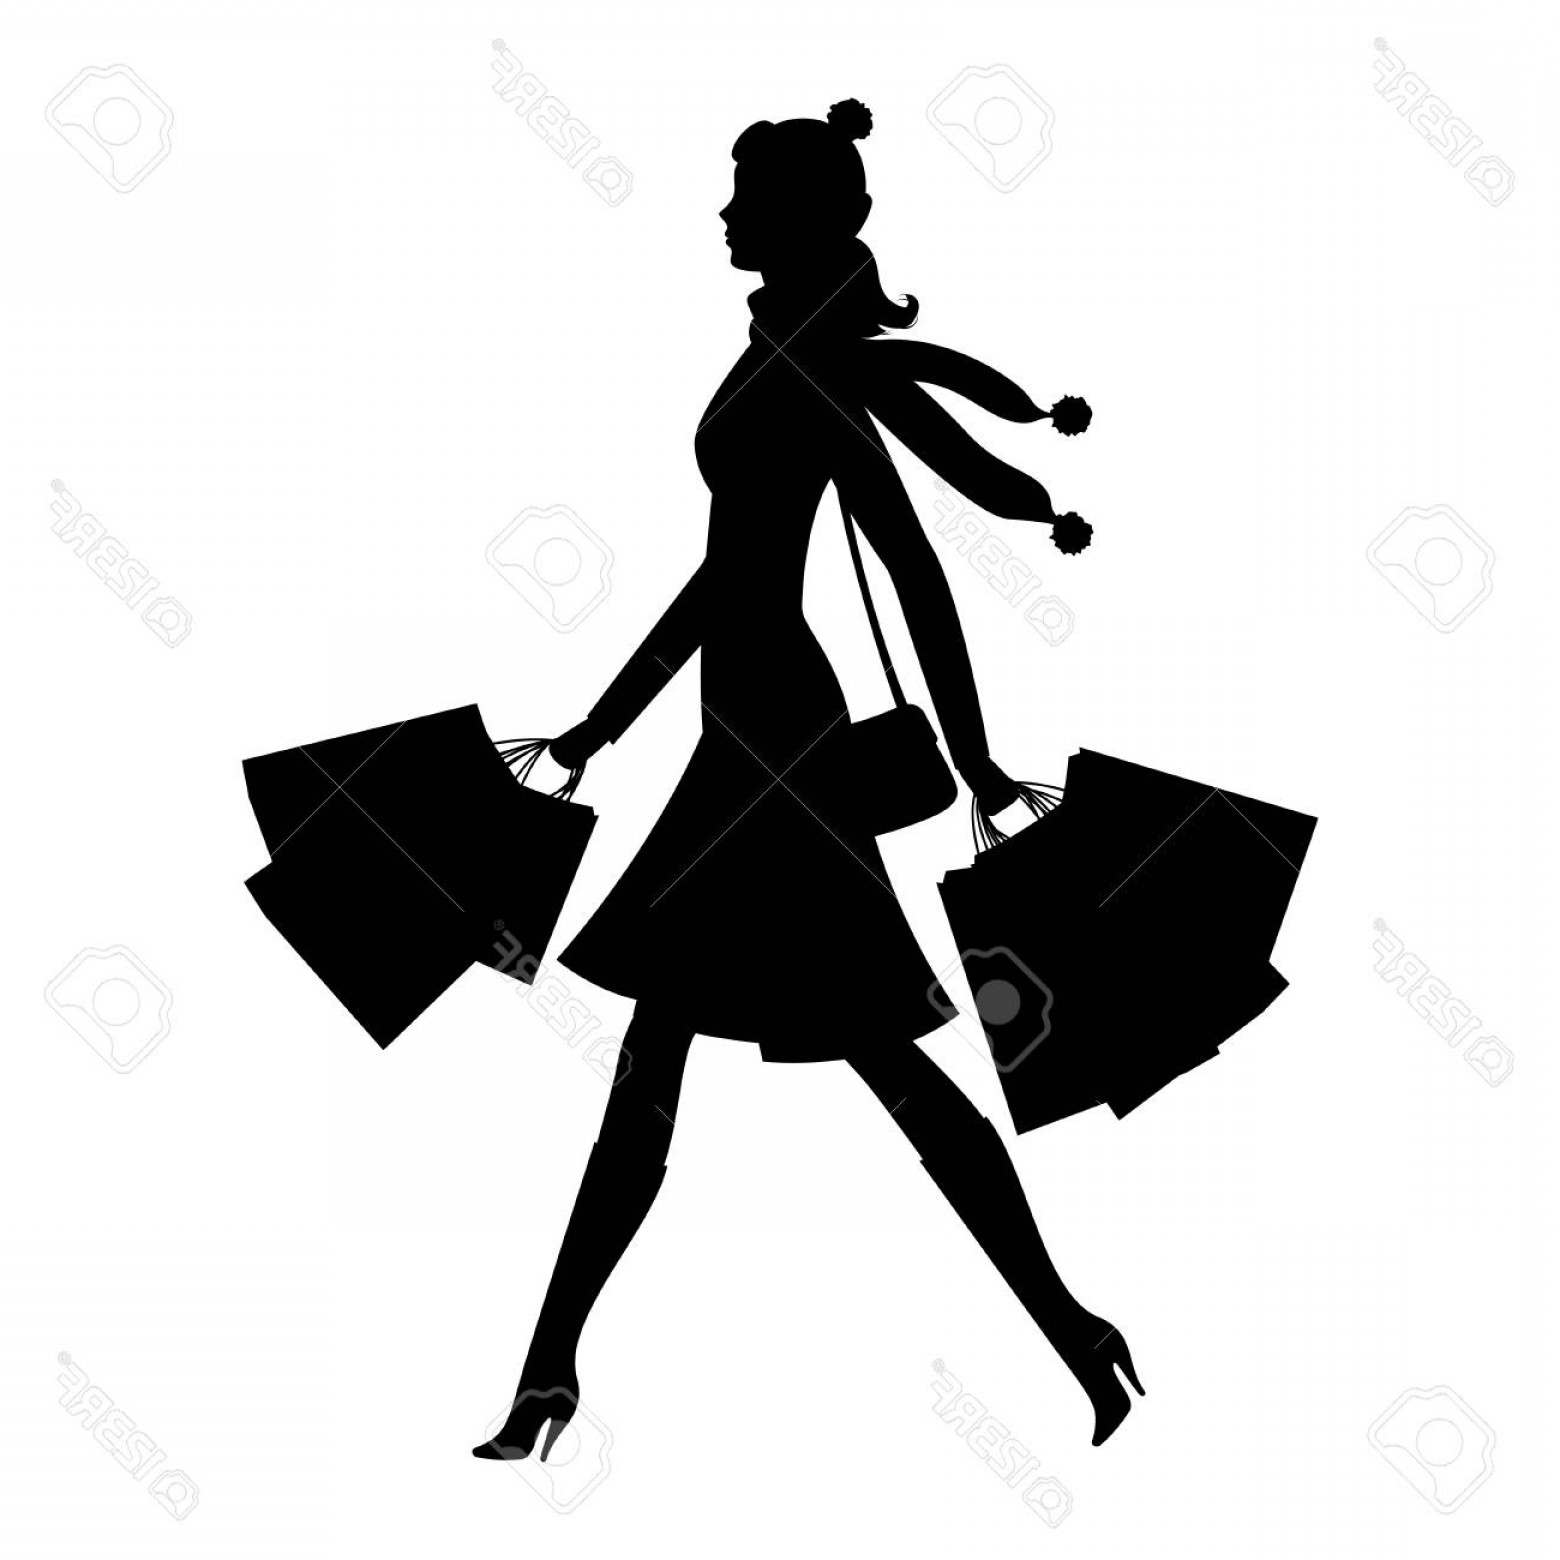 Young Woman Silhouette Vector: Photostock Vector Shopper Young Woman Silhouette Of Girl With Shopping Bags Sale And Shopping Concept Vector Illustrat